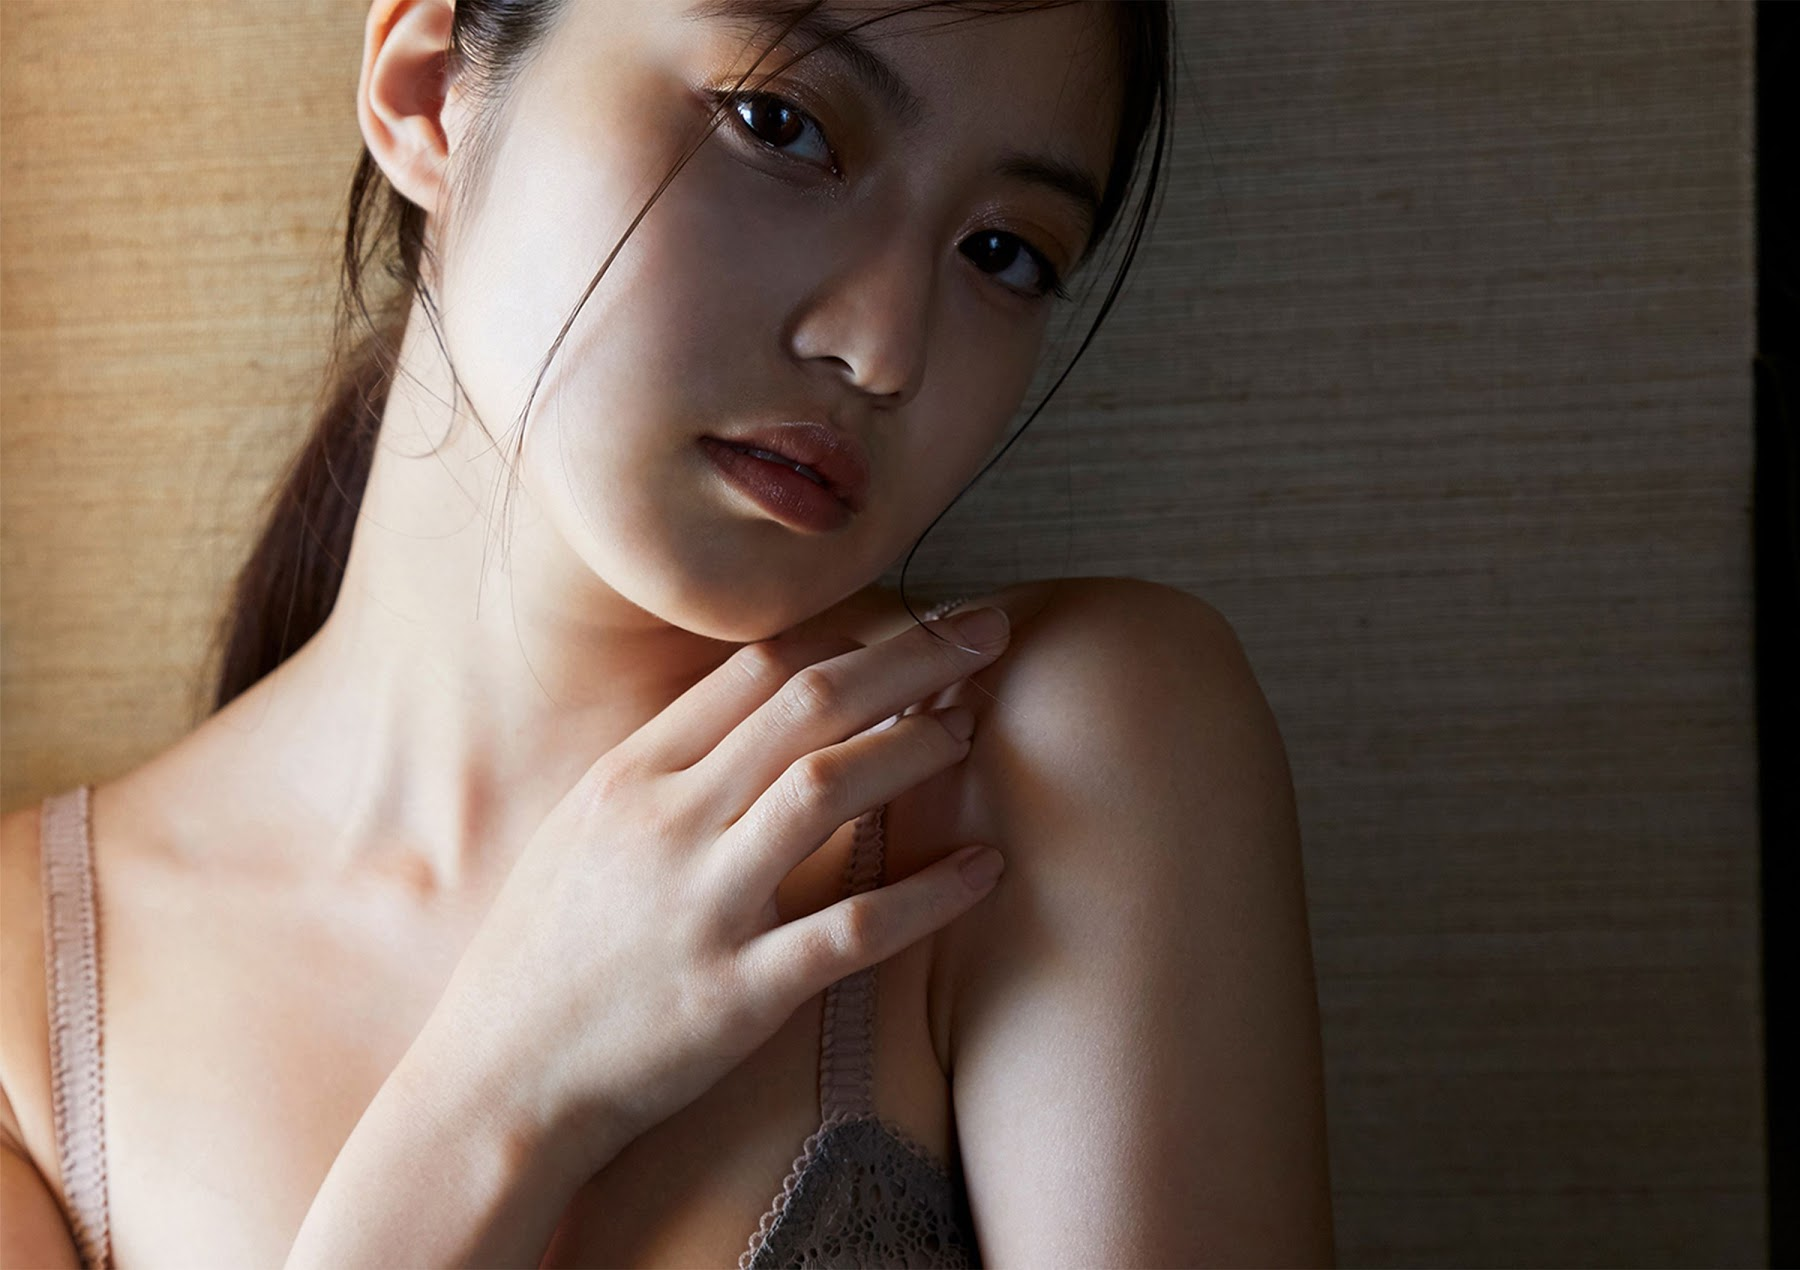 Without a doubt the youngest actress Mio Imada096